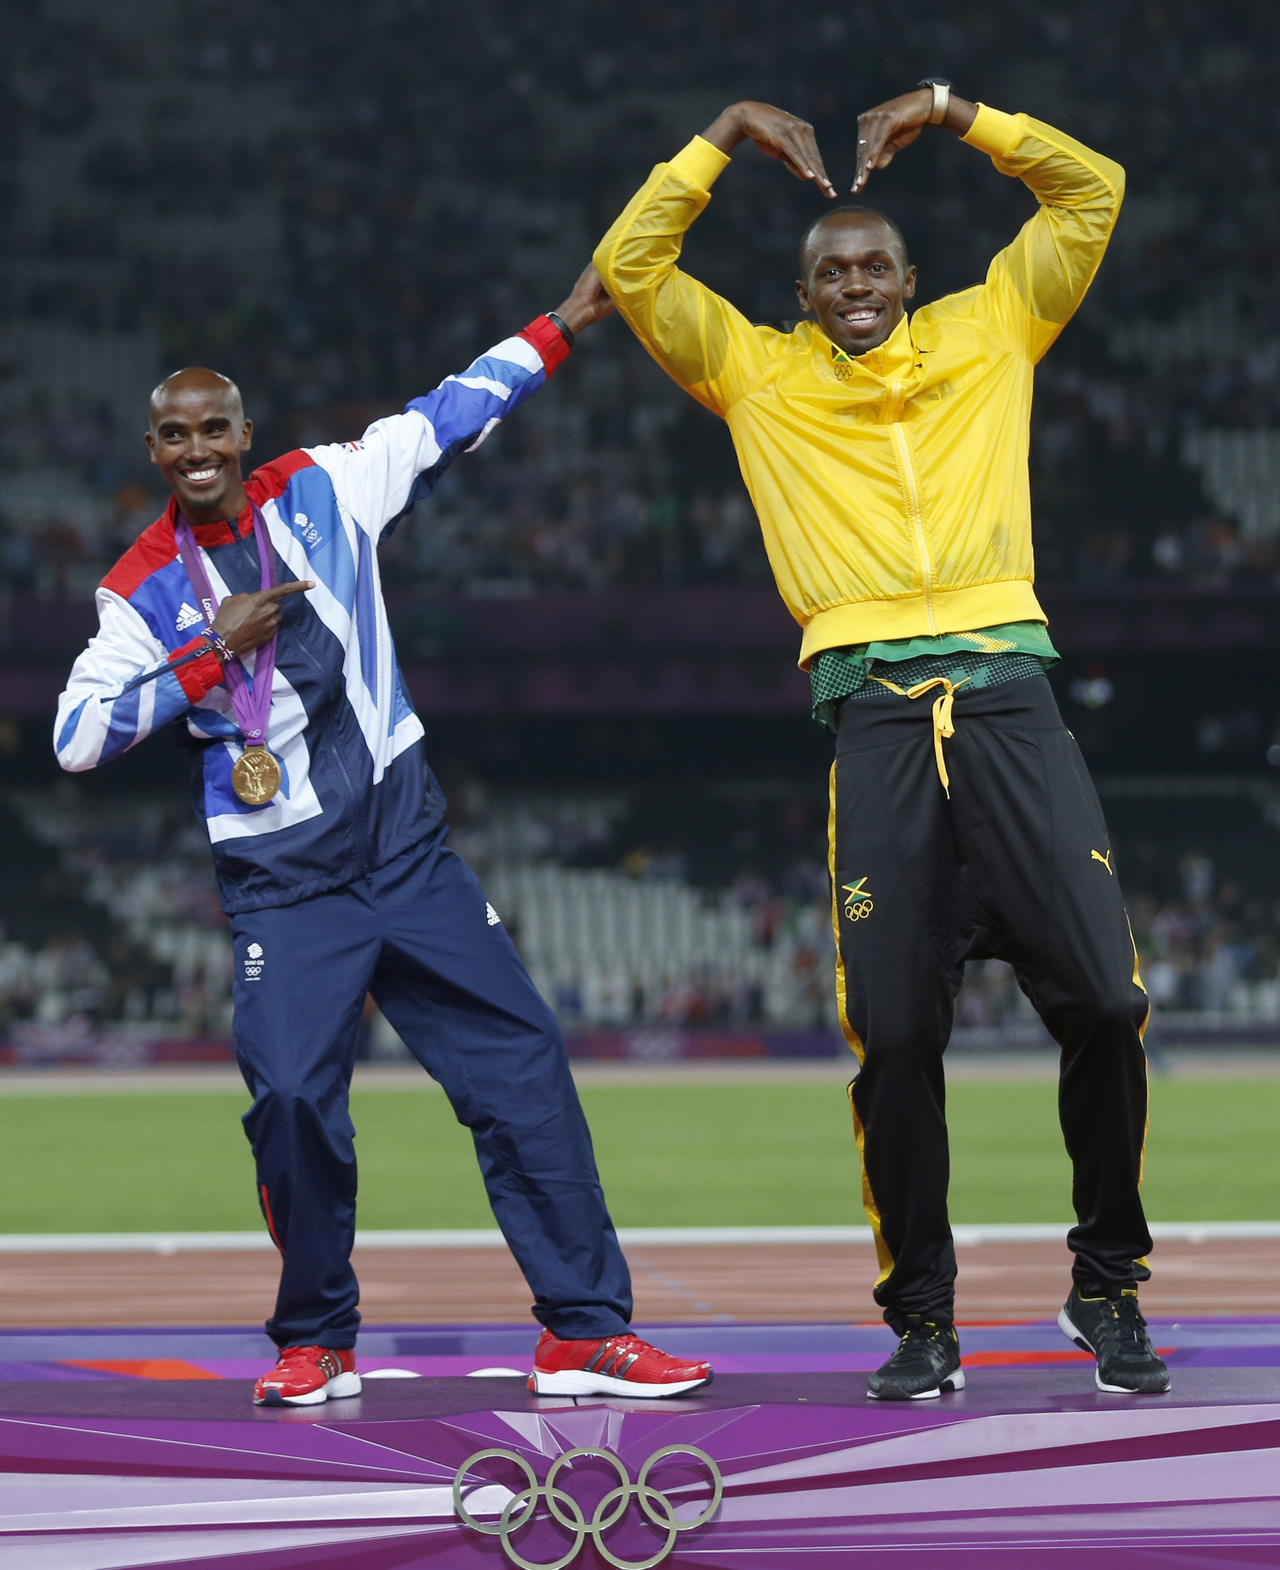 reuters:  Jamaica's Usain Bolt (R) celebrates with Britain's Mo Farah on the podium after each receiving gold medals, Bolt for men's 4x100m relay and Farah for men's 5000m at the victory ceremony at the London 2012 Olympic Games at the Olympic Stadium August 11, 2012. REUTERS/Eddie KeoghFULL COVERAGE: The London 2012 Summer Olympic Games   this photo is awesome